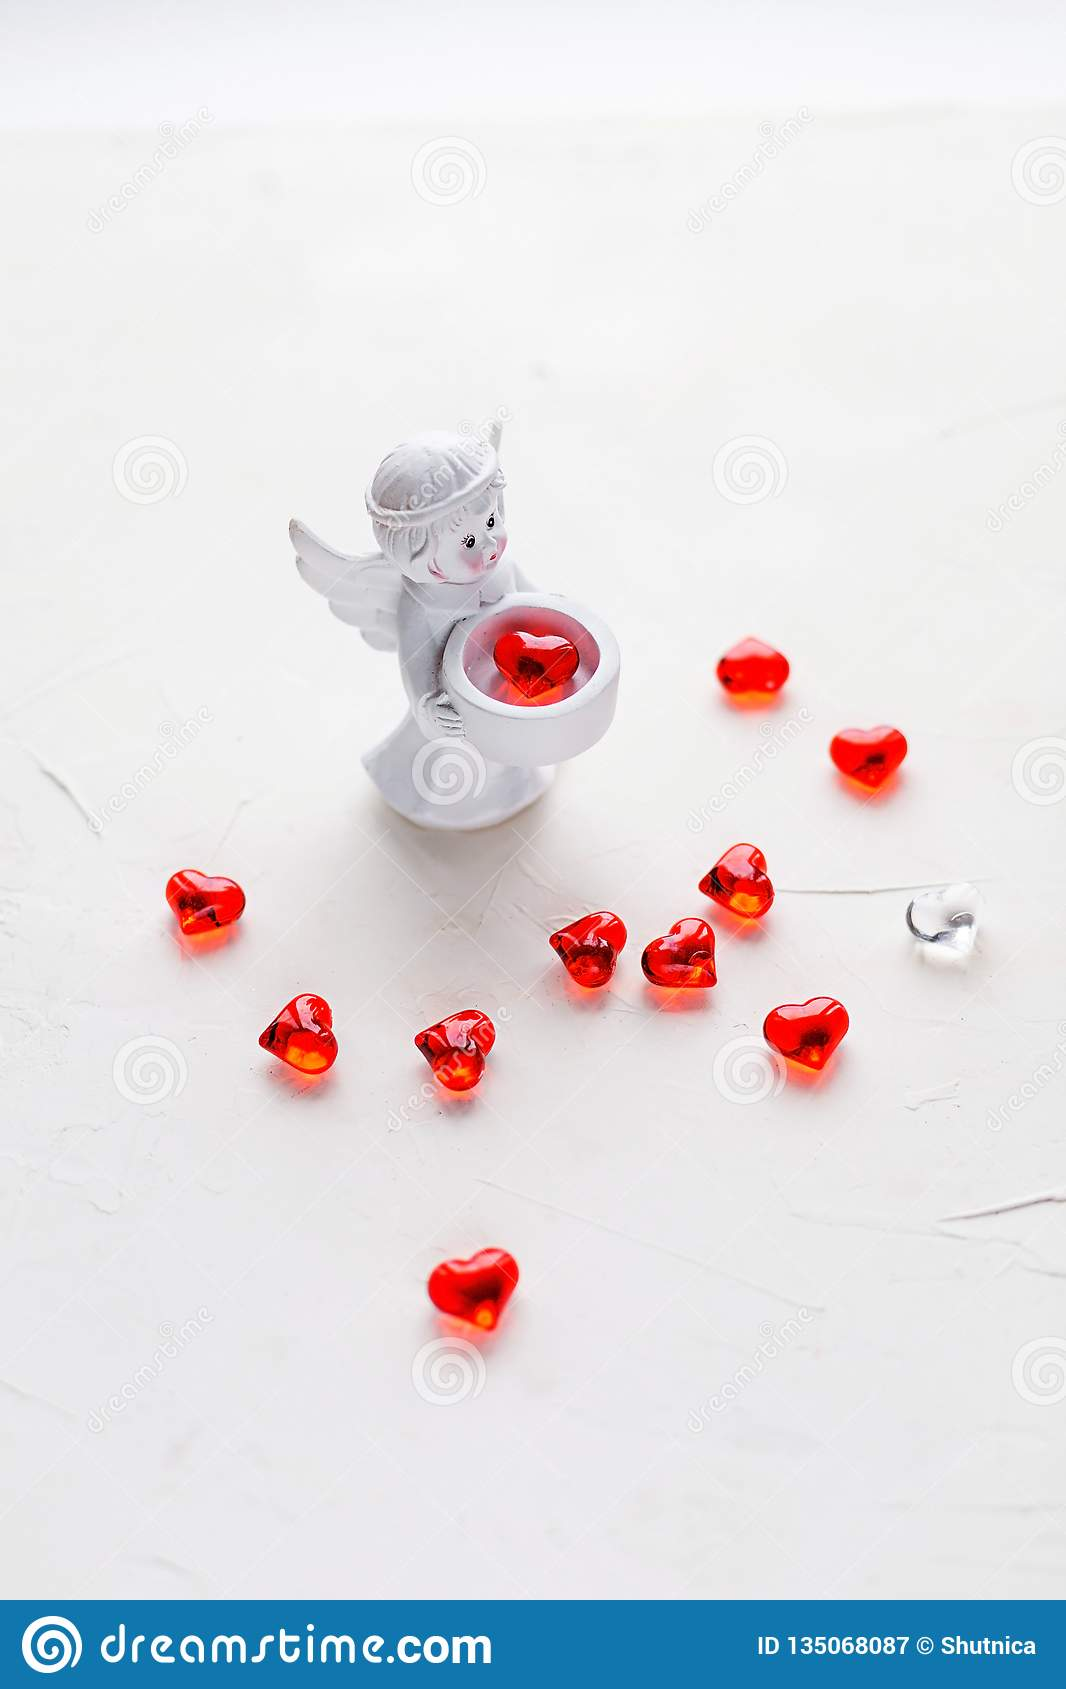 Small statuette of an angel on white with red hearts